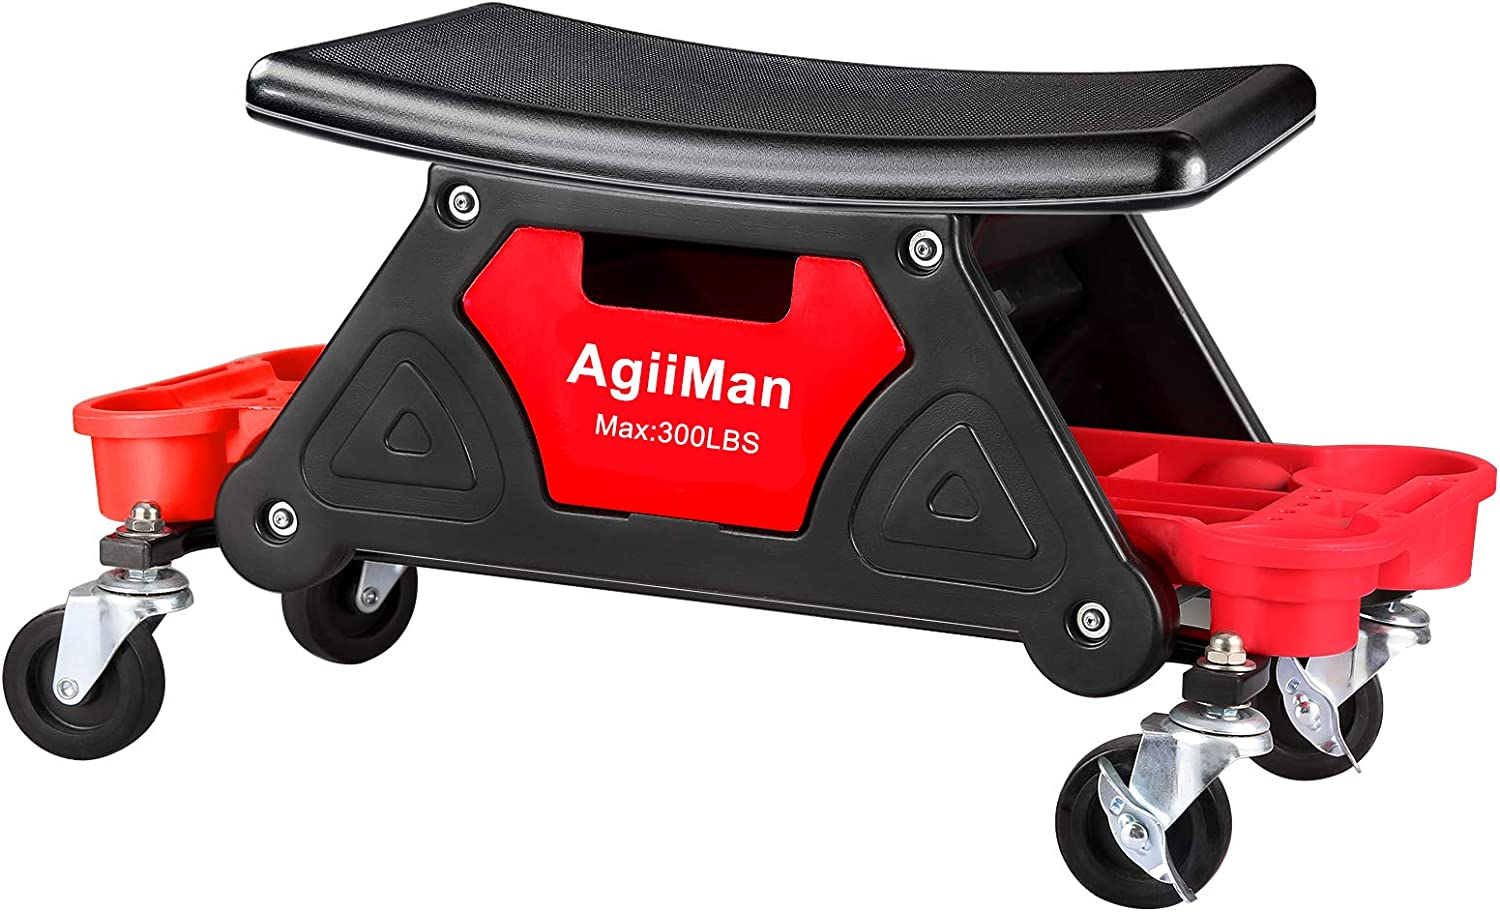 AgiiMan Mechanic Stool - Detailing Garage Rolling Stool with Wheels, Roller Creeper Seat Chair Repair Tools Tray, 2 Tool Storage Drawers Under Seat, 300 Lbs Capacity: Automotive